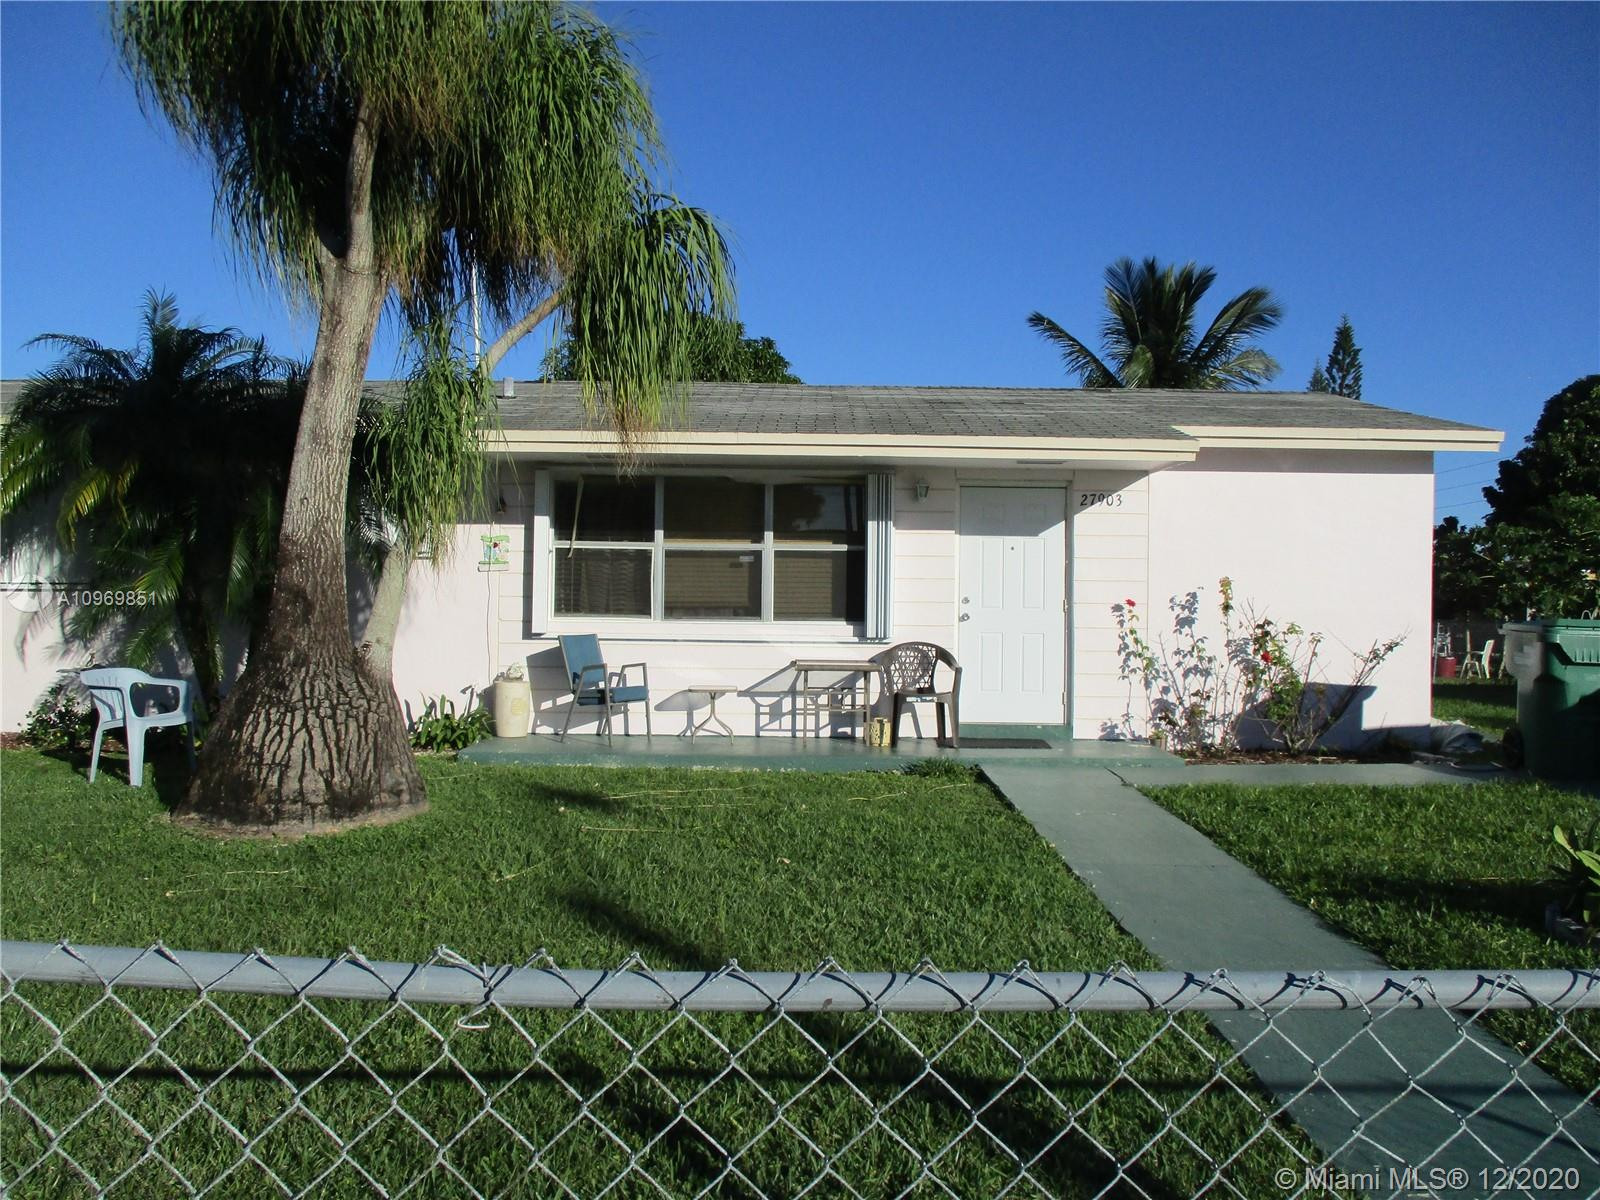 27903 SW 131st Ave Property Photo - Homestead, FL real estate listing